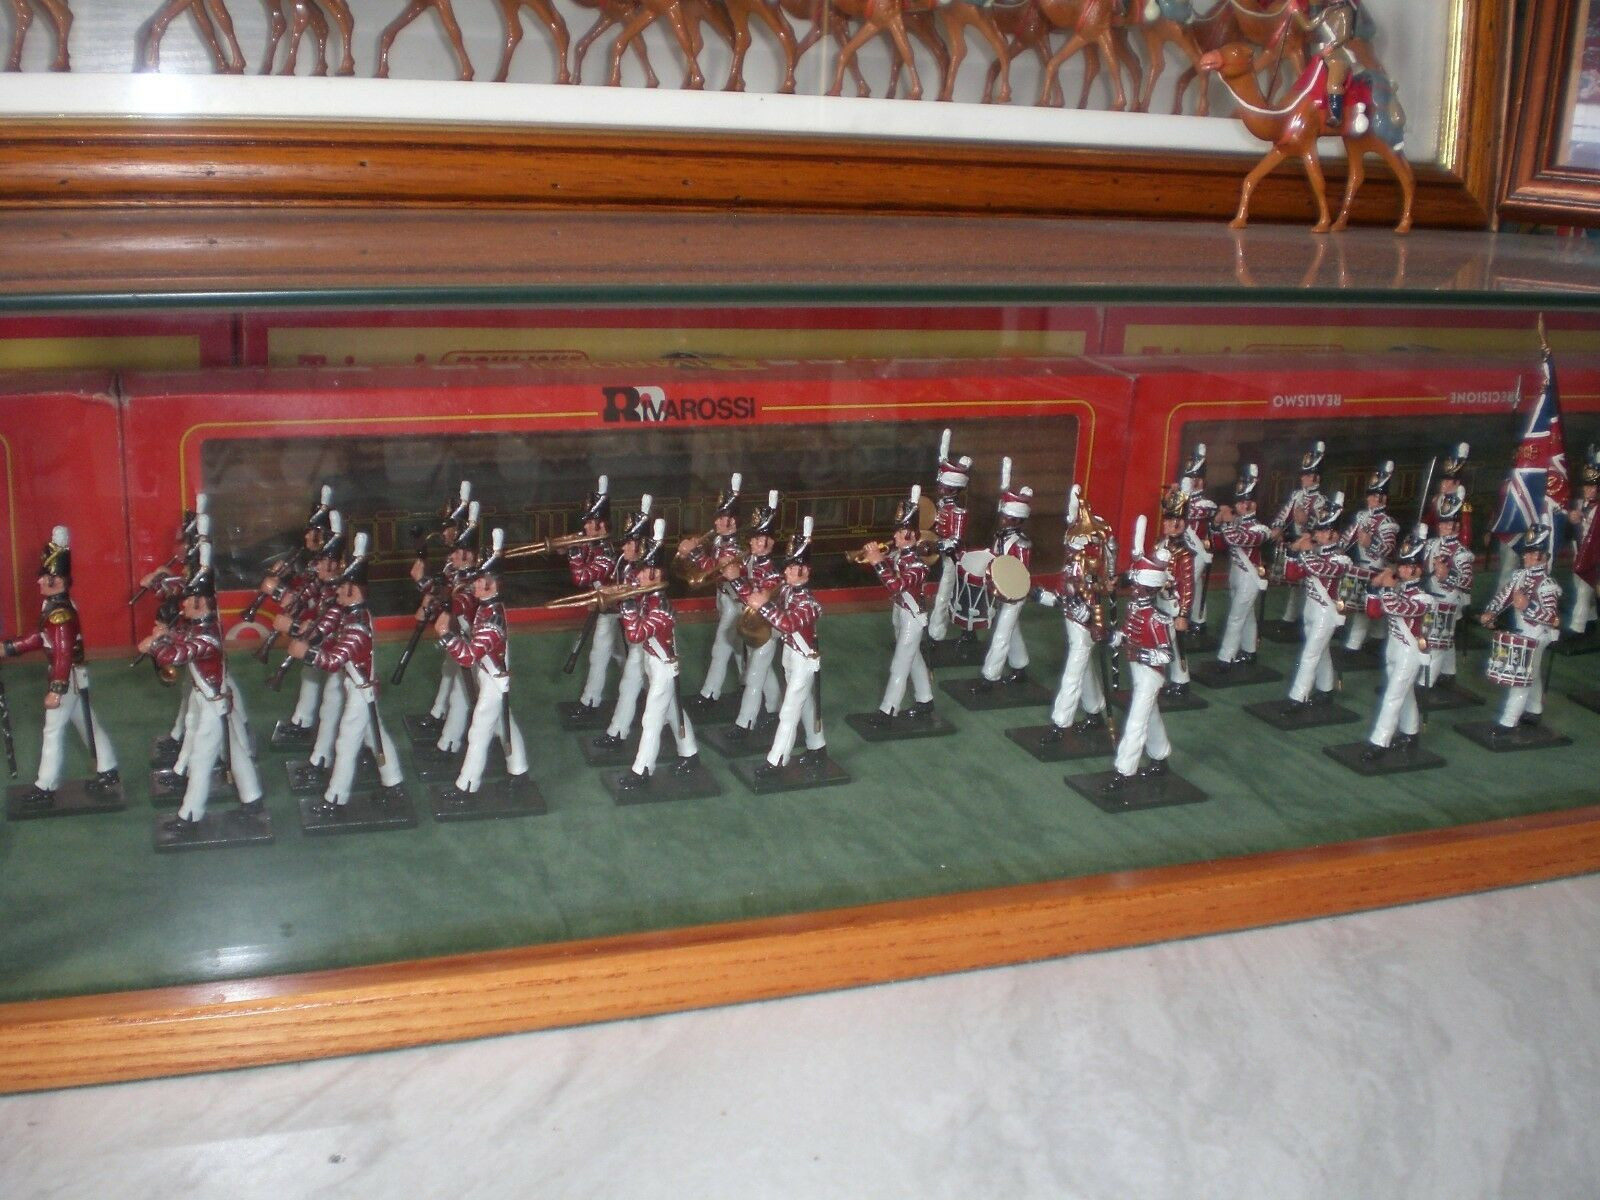 A COMPLETE BRITISH BAND OF THE COLDSREAM GUARDS 1815 BY BRITIANS.